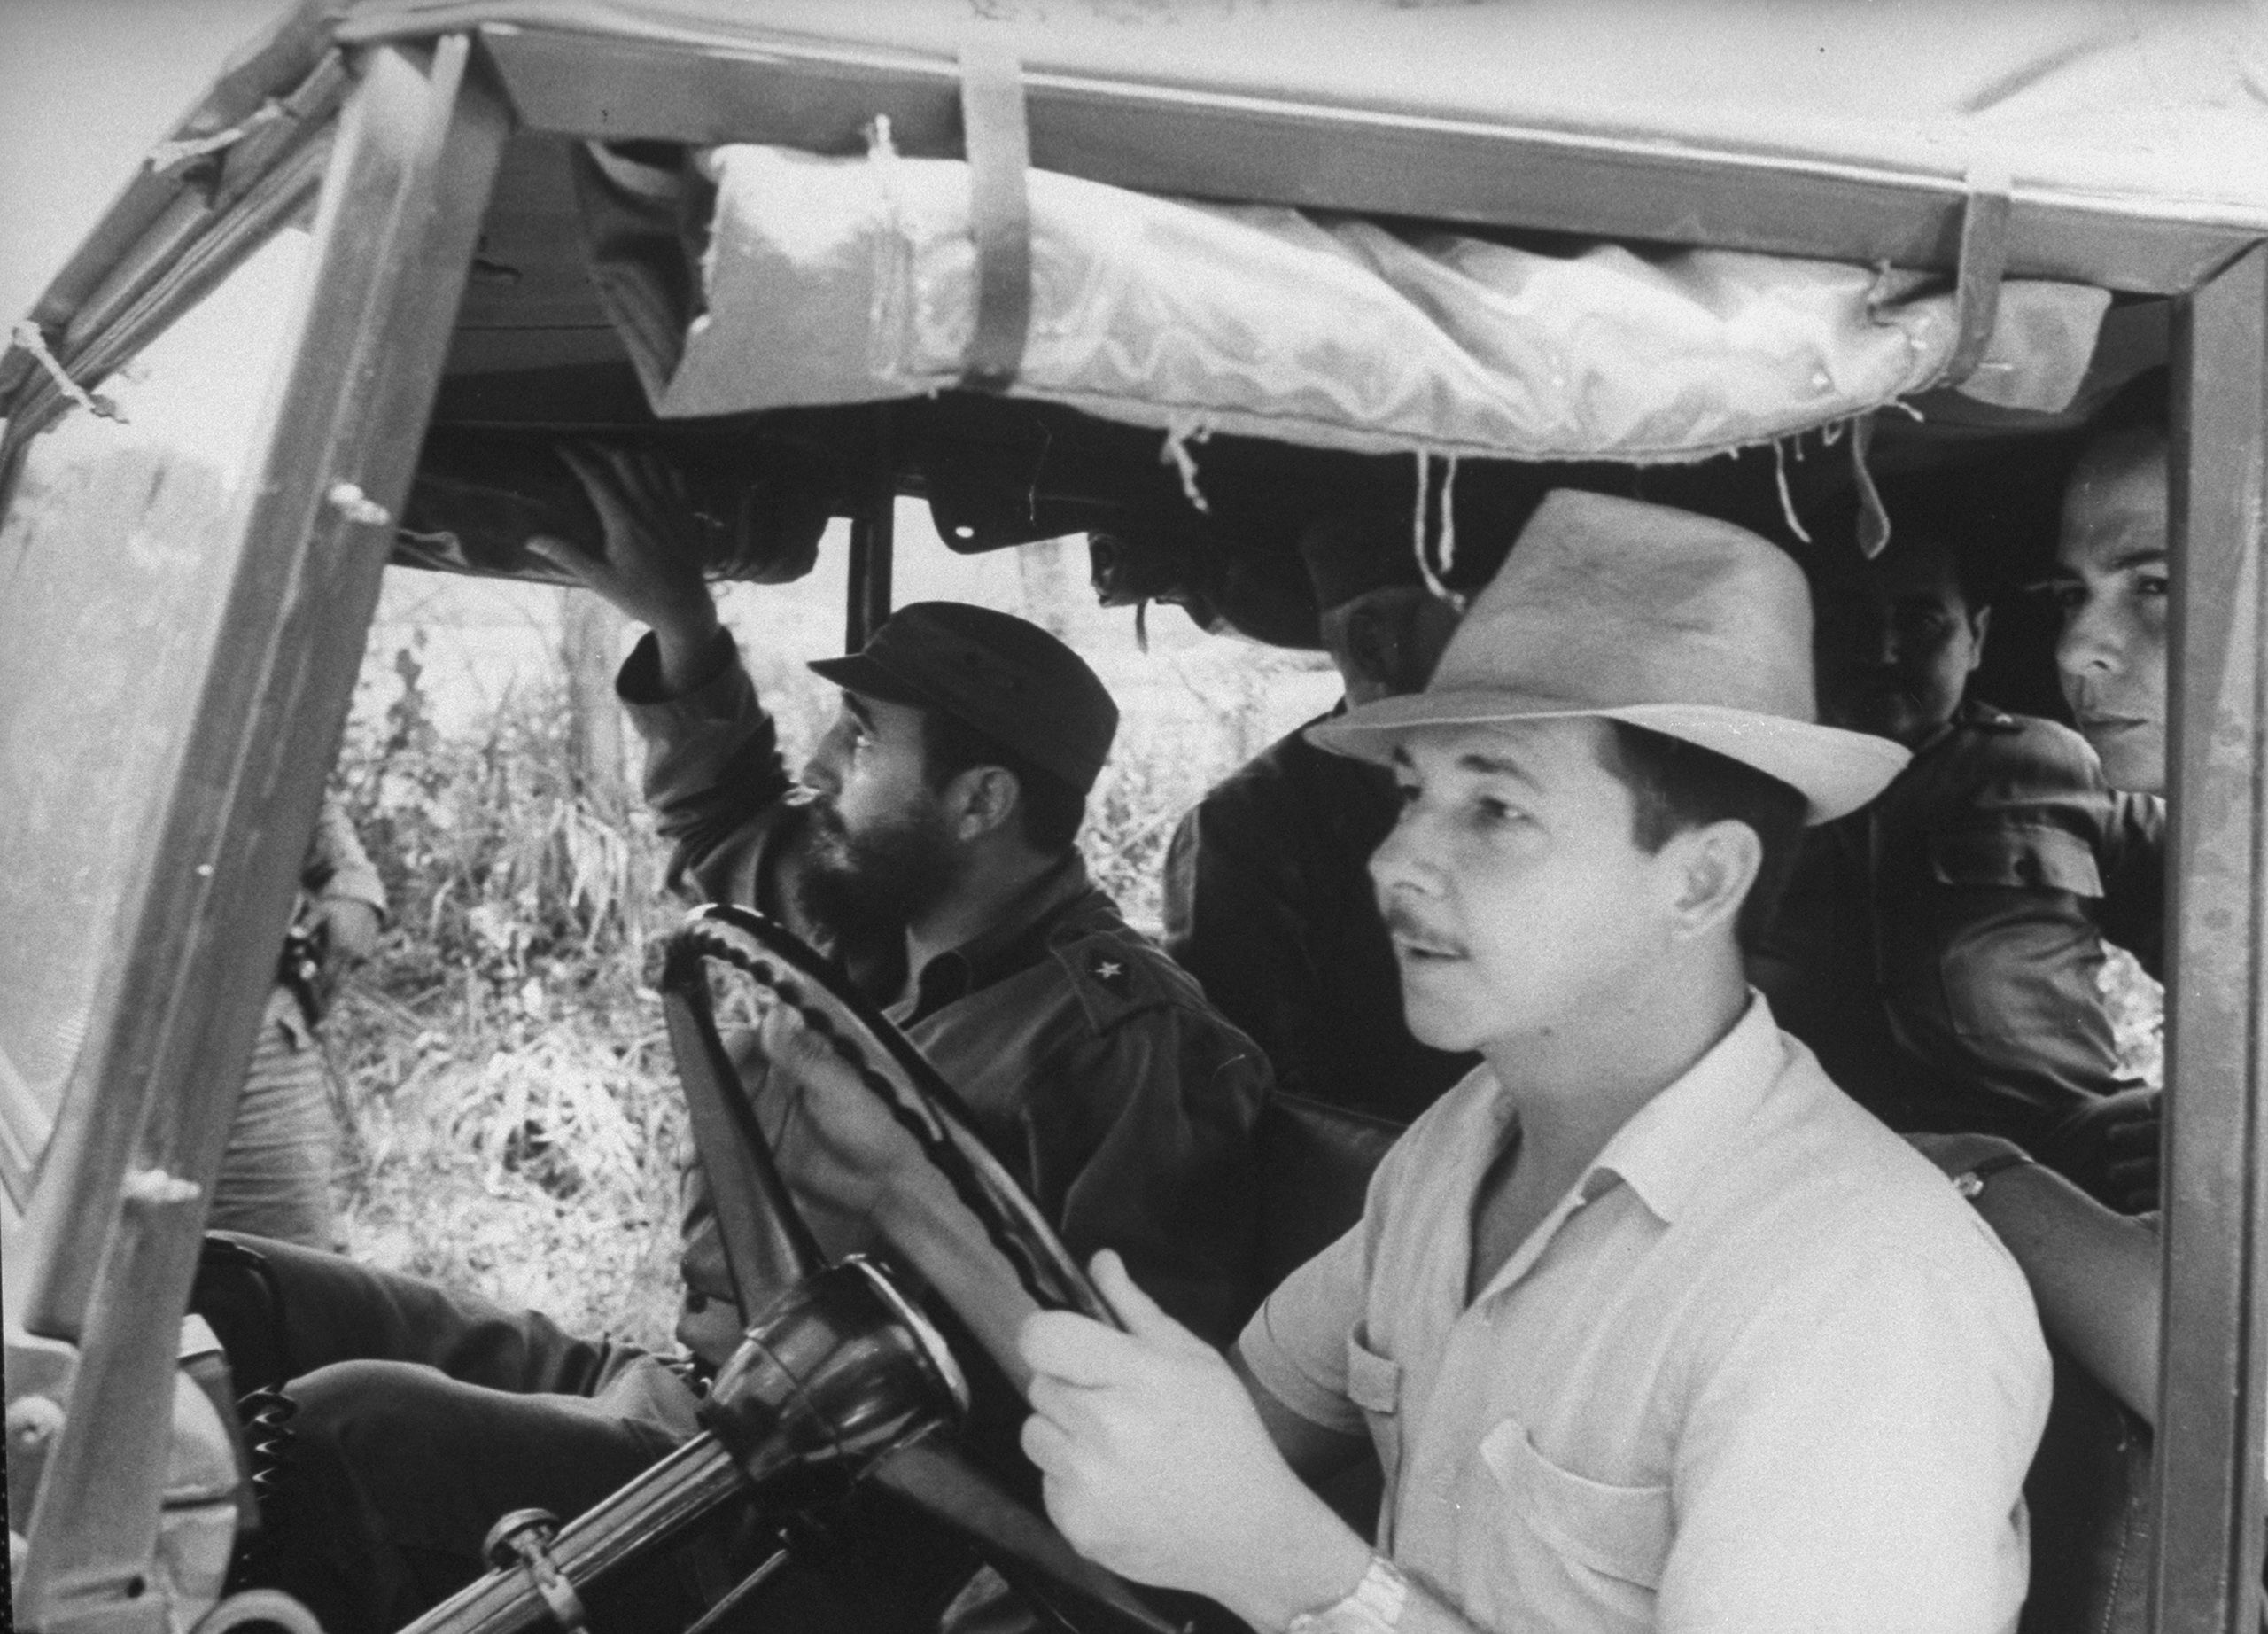 Raul Castro, in white, acts as a chauffeur for his brother, Fidel, in passenger seat, 1964.